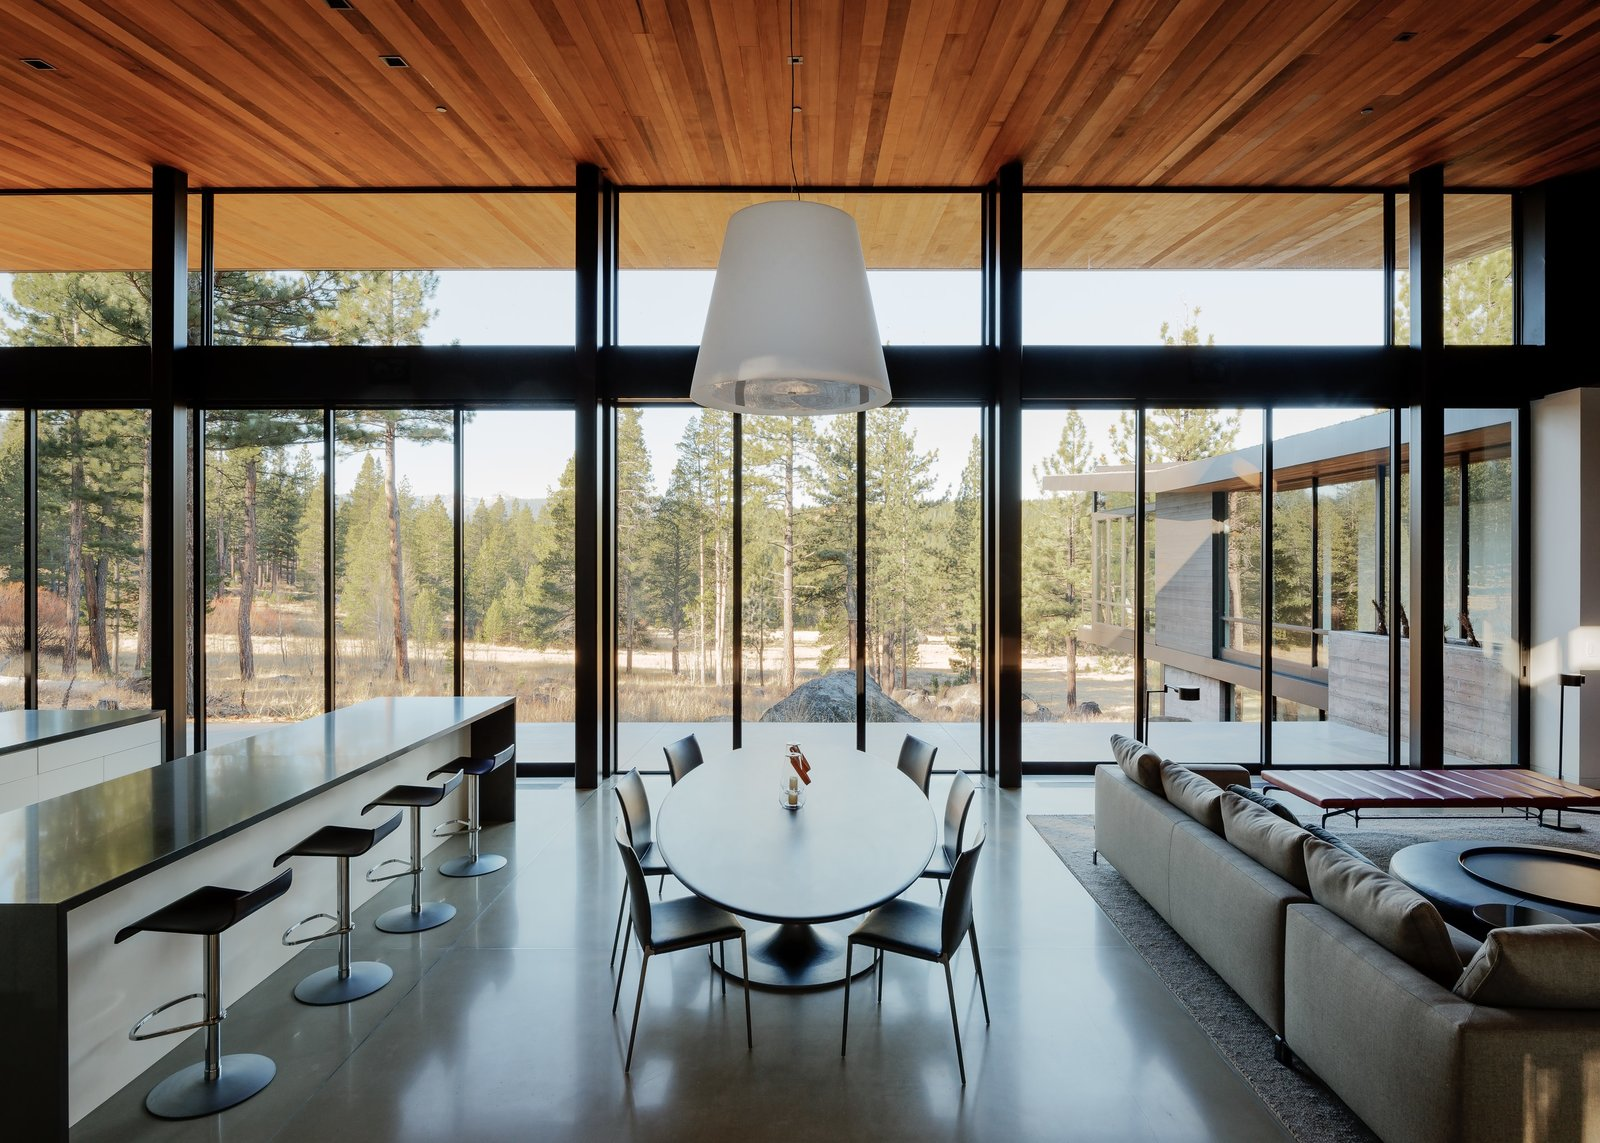 Dining Room, Pendant Lighting, Concrete Floor, Table, Chair, and Stools Dining Room  Martis Camp Residence 1 by John Maniscalco Architecture